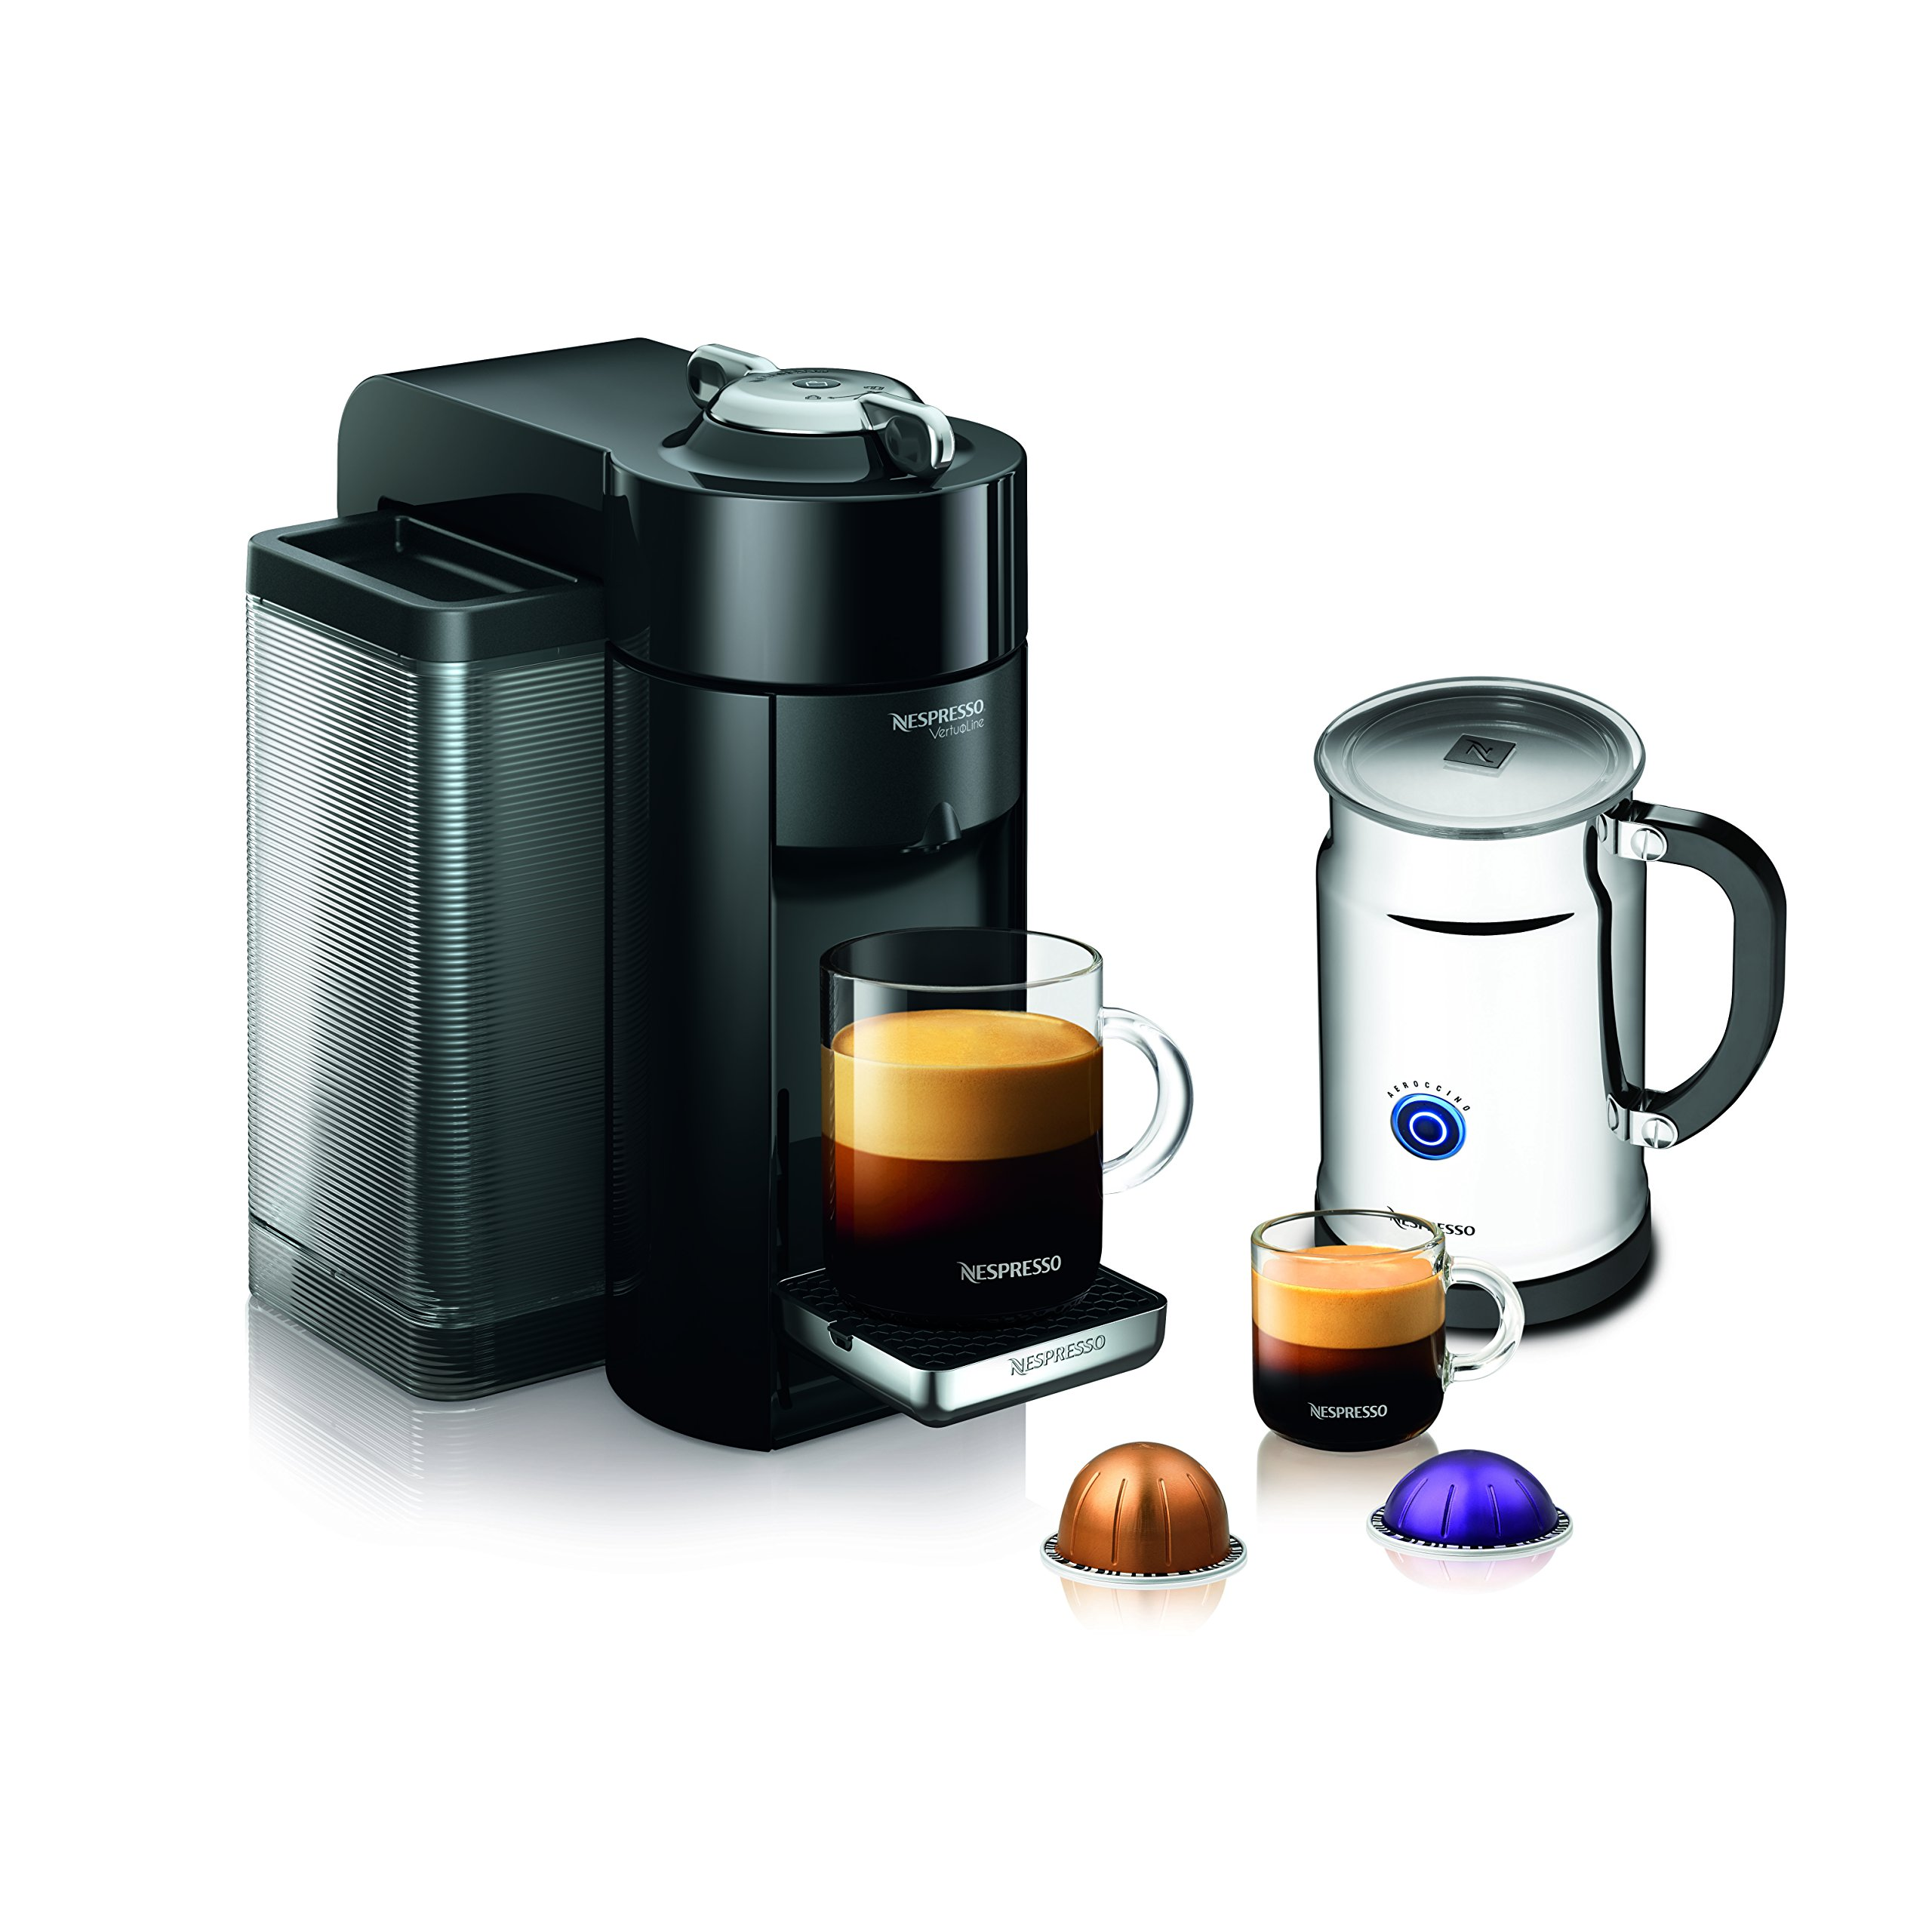 Nespresso A+GCC1-US-BK-NE VertuoLine Evoluo Deluxe Coffee & Espresso Maker with Aeroccino Plus Milk Frother, Black (Discontinued Model) by Nespresso (Image #1)